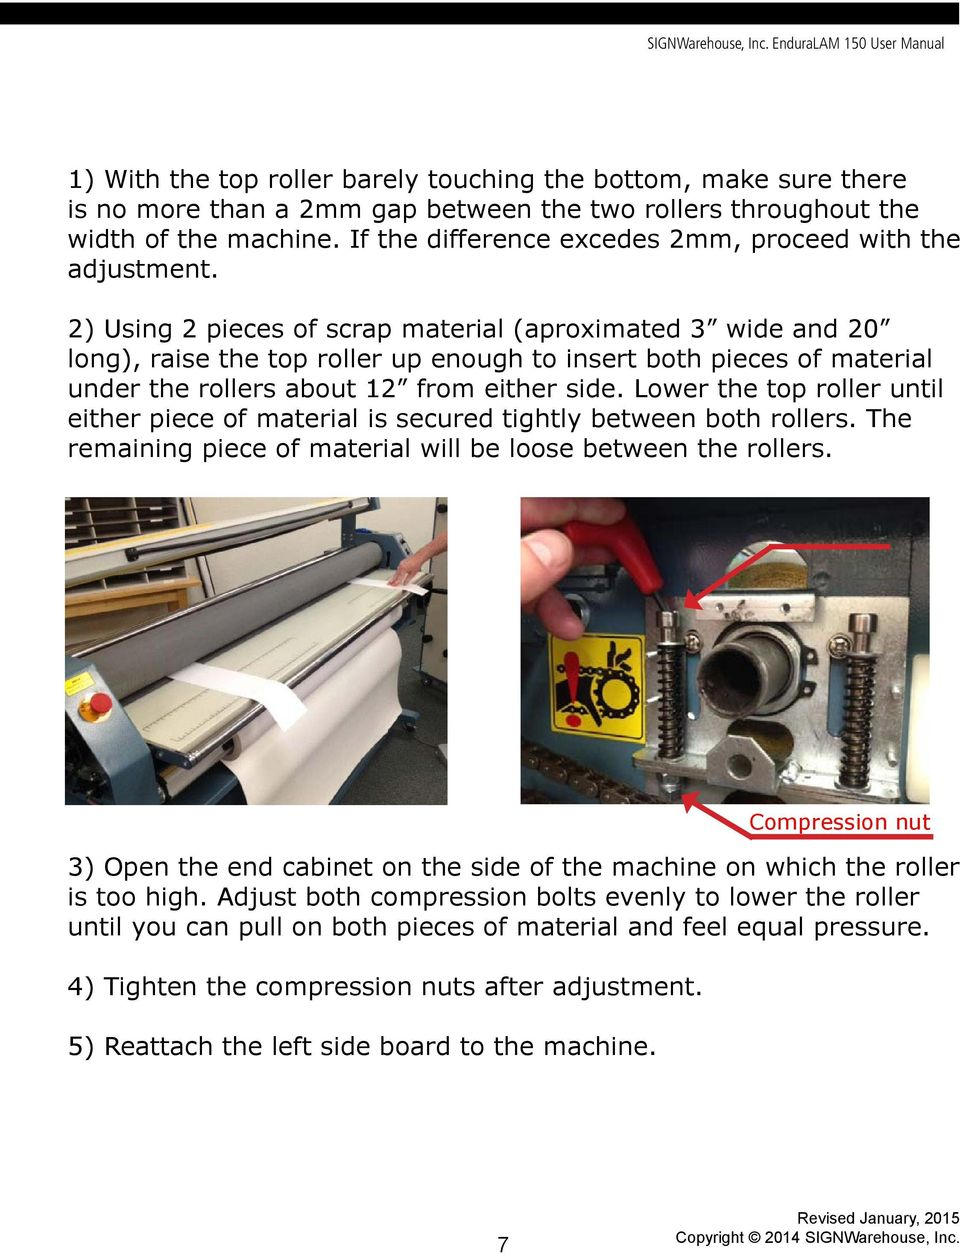 2) Using 2 pieces of scrap material (aproximated 3 wide and 20 long), raise the top roller up enough to insert both pieces of material under the rollers about 12 from either side.